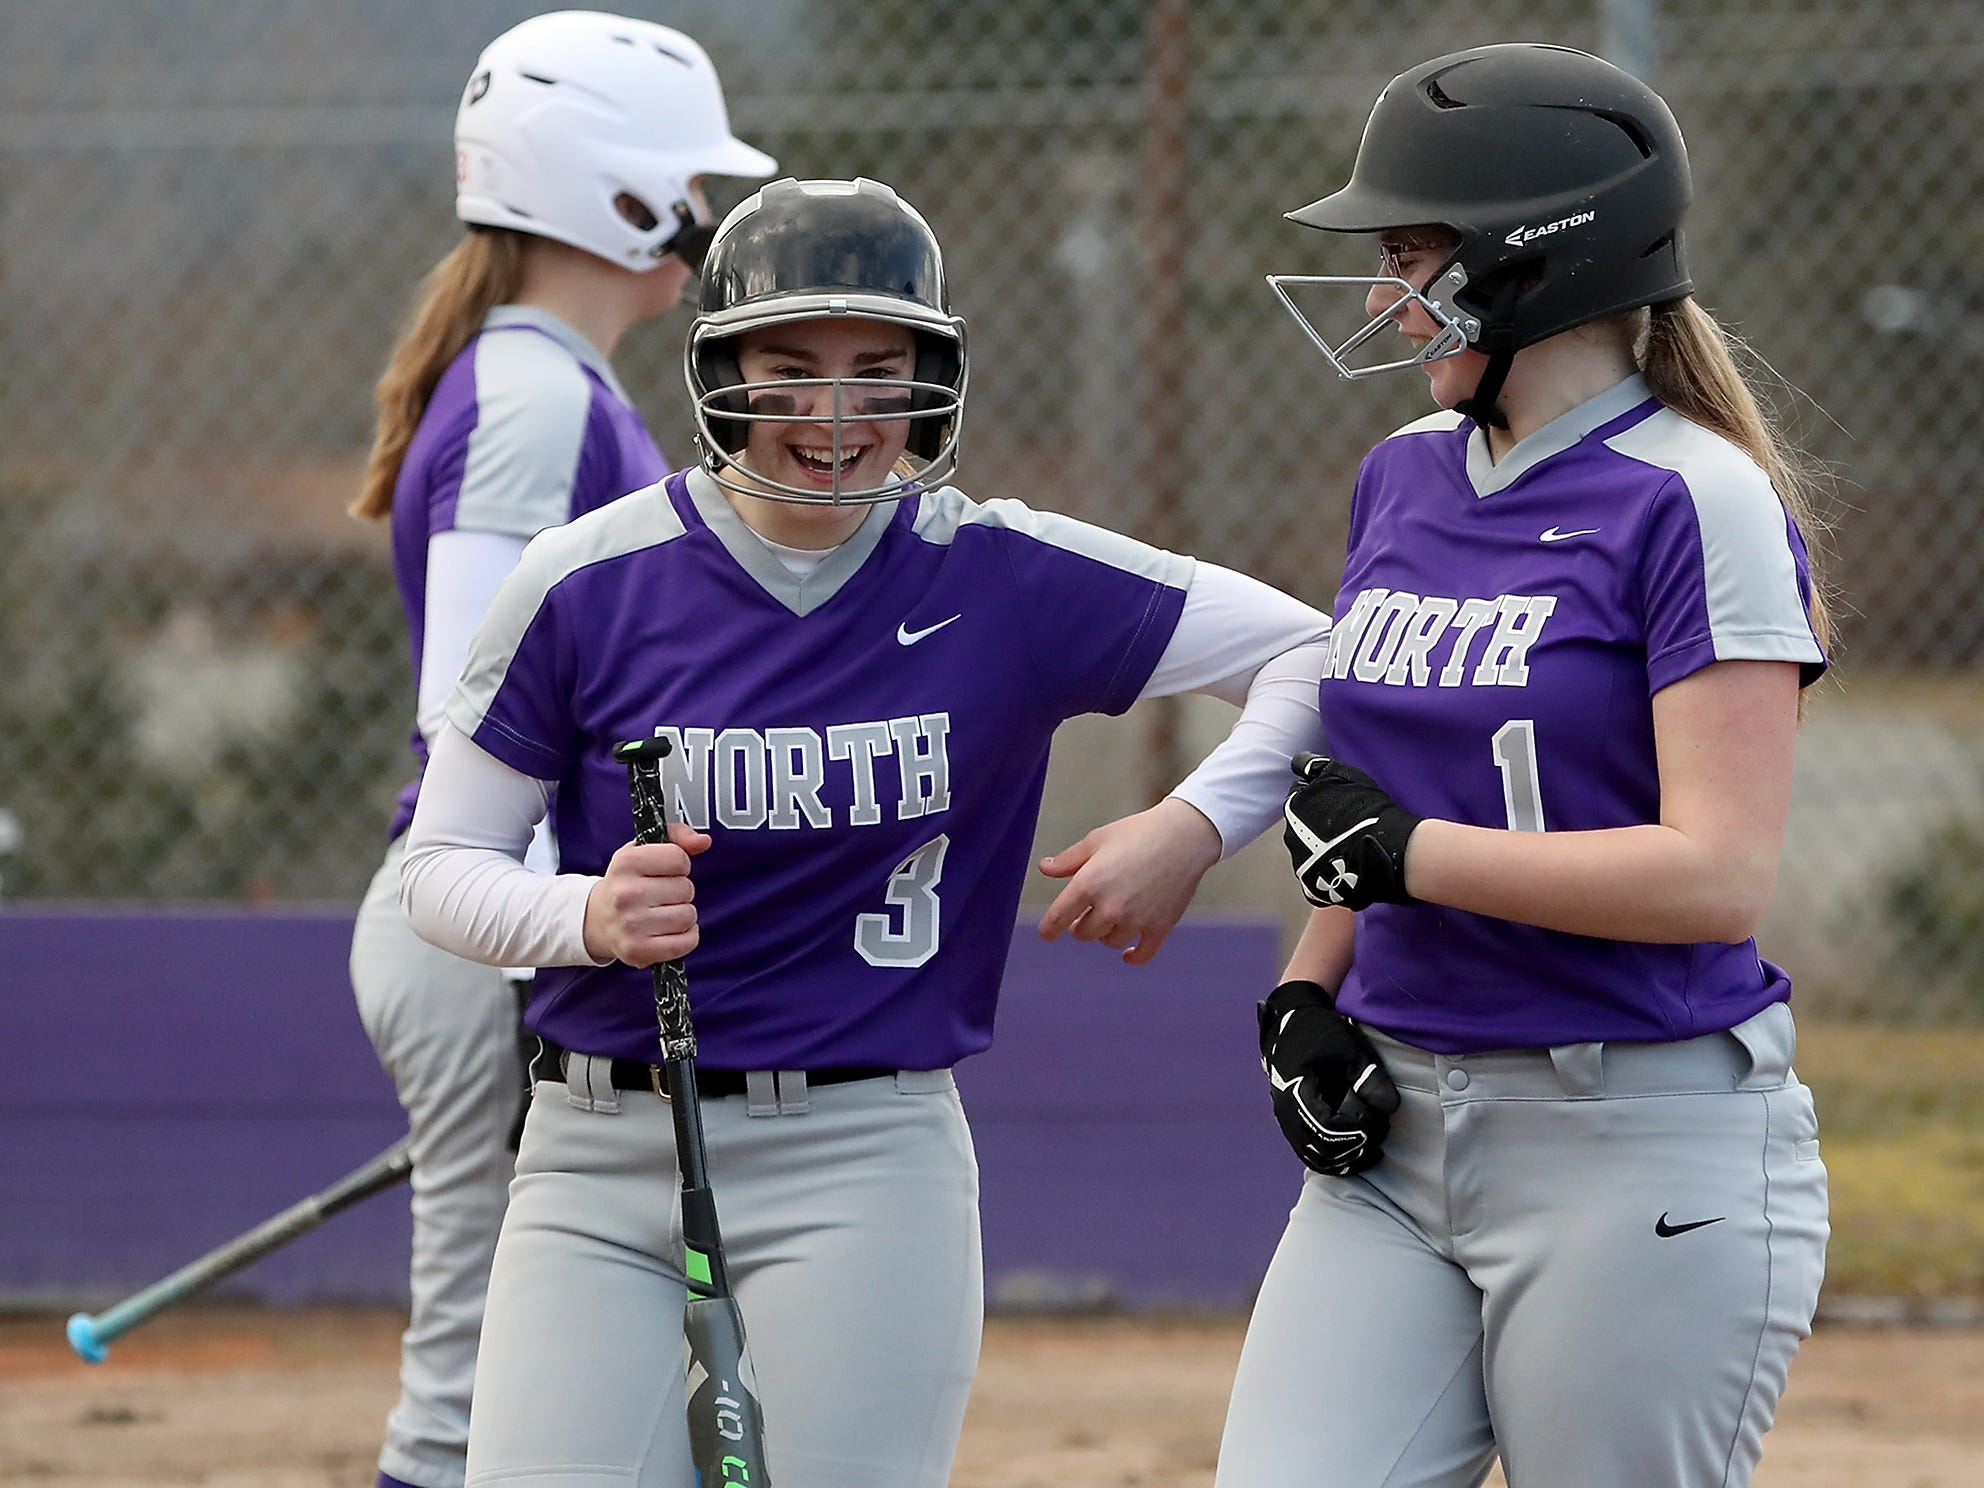 North Kitsap's Olivia Holmbry (3) and Samantha Burgh (1) celebrate a run against vs Central Kitsap in Poulsbo on Wednesday, March 13, 2019.